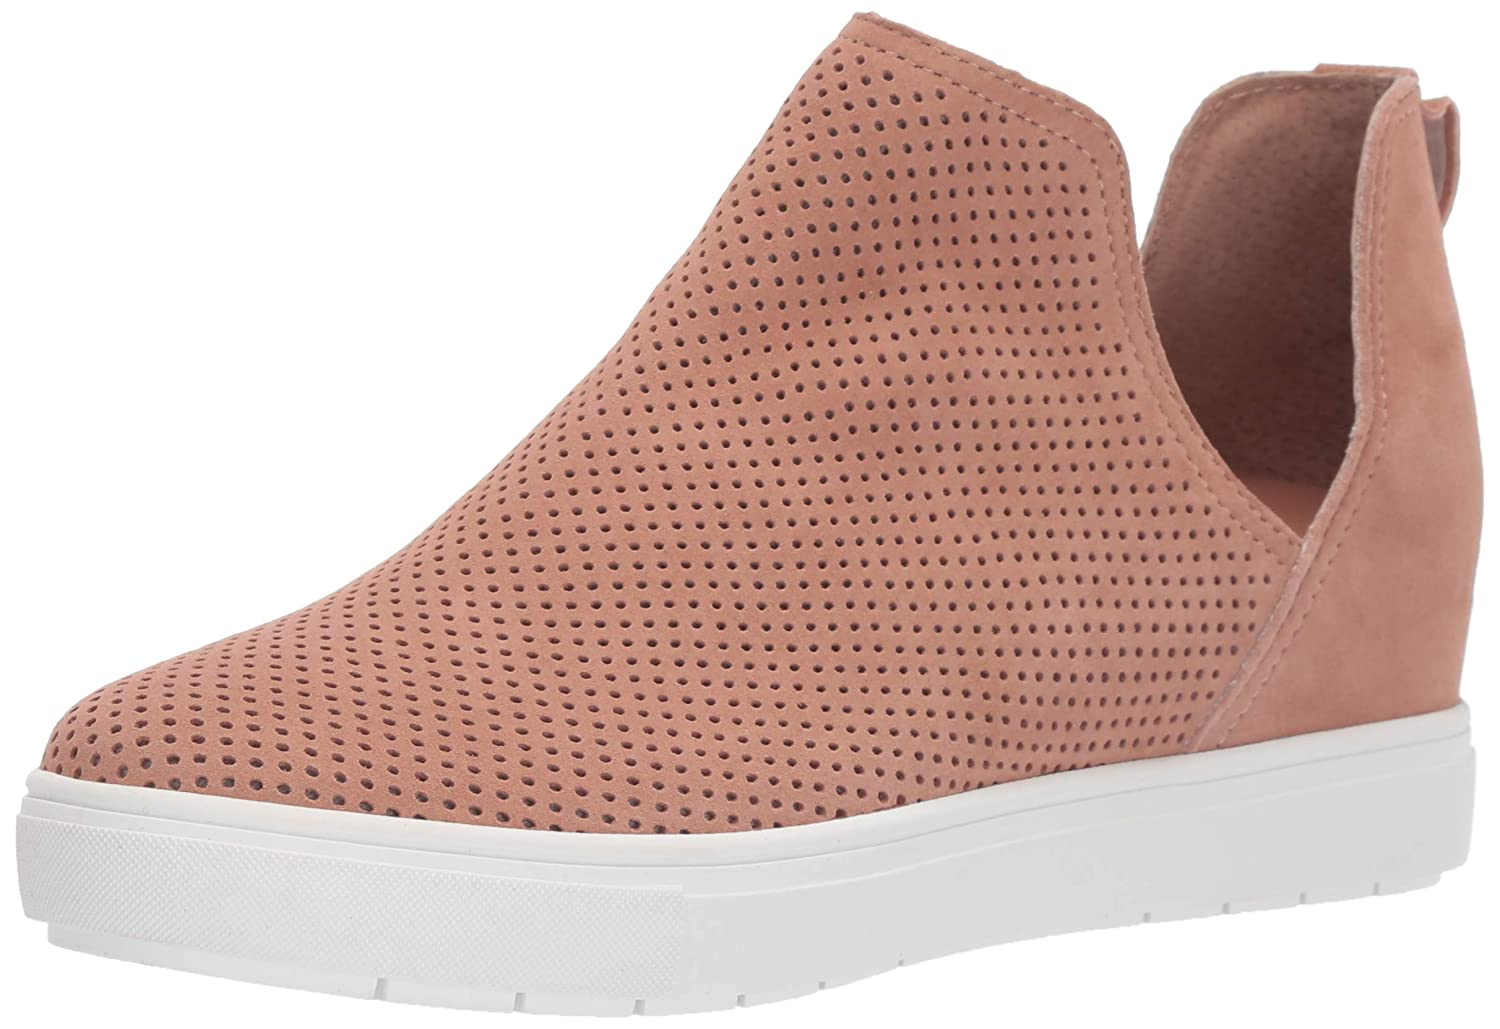 Nude Suede STEVEN by Steve Madden Womens Canares-p Sneaker